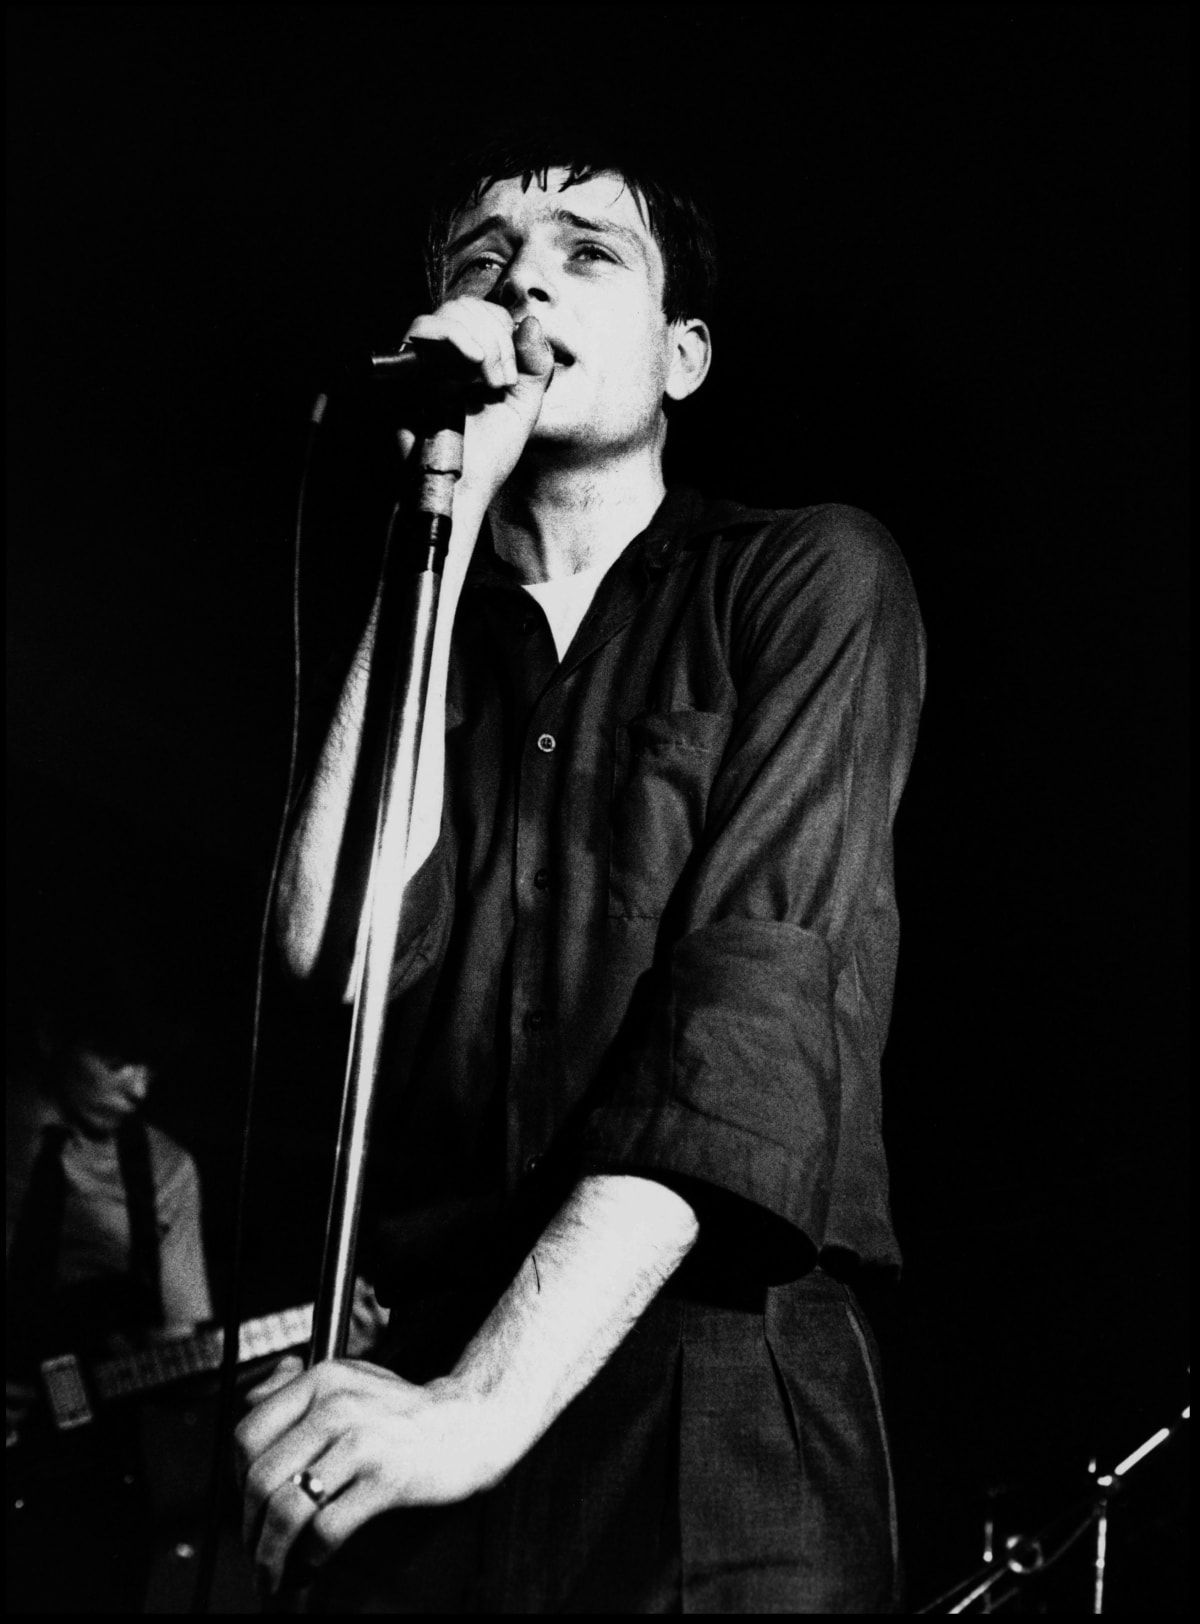 Kevin Cummins 8.Ian Curtis, Joy Division, The Factory Hulme, Manchester 13 July 1979, 2006 Gelatin-silver print. Edition of 75 40.6 x 50.8 cm 16 x 20 in Edition of 75